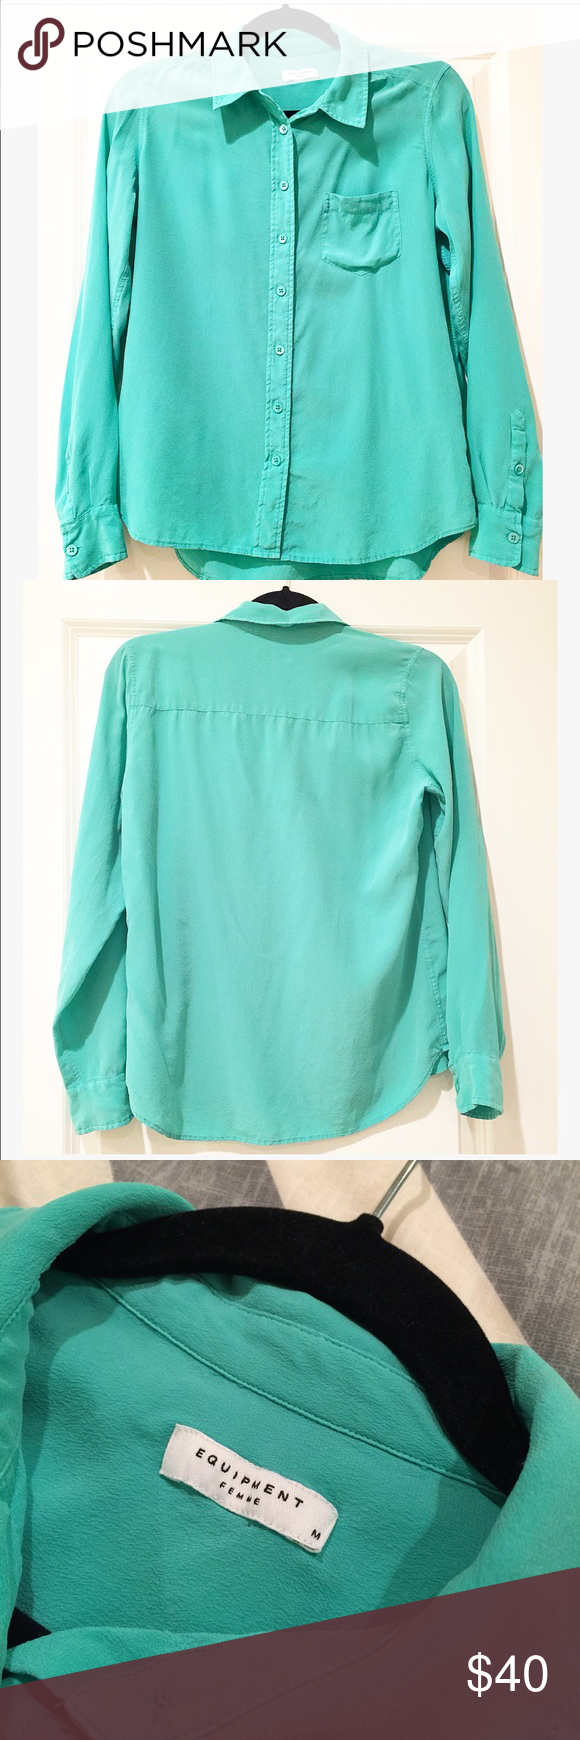 Equipment Silk blouse Teal Sz. M Super soft single pocket Equipment Silk Blouse.  Size Medium.  Only signs of wear is a little fading on buttons.  Color: teal. Equipment Tops Blouses